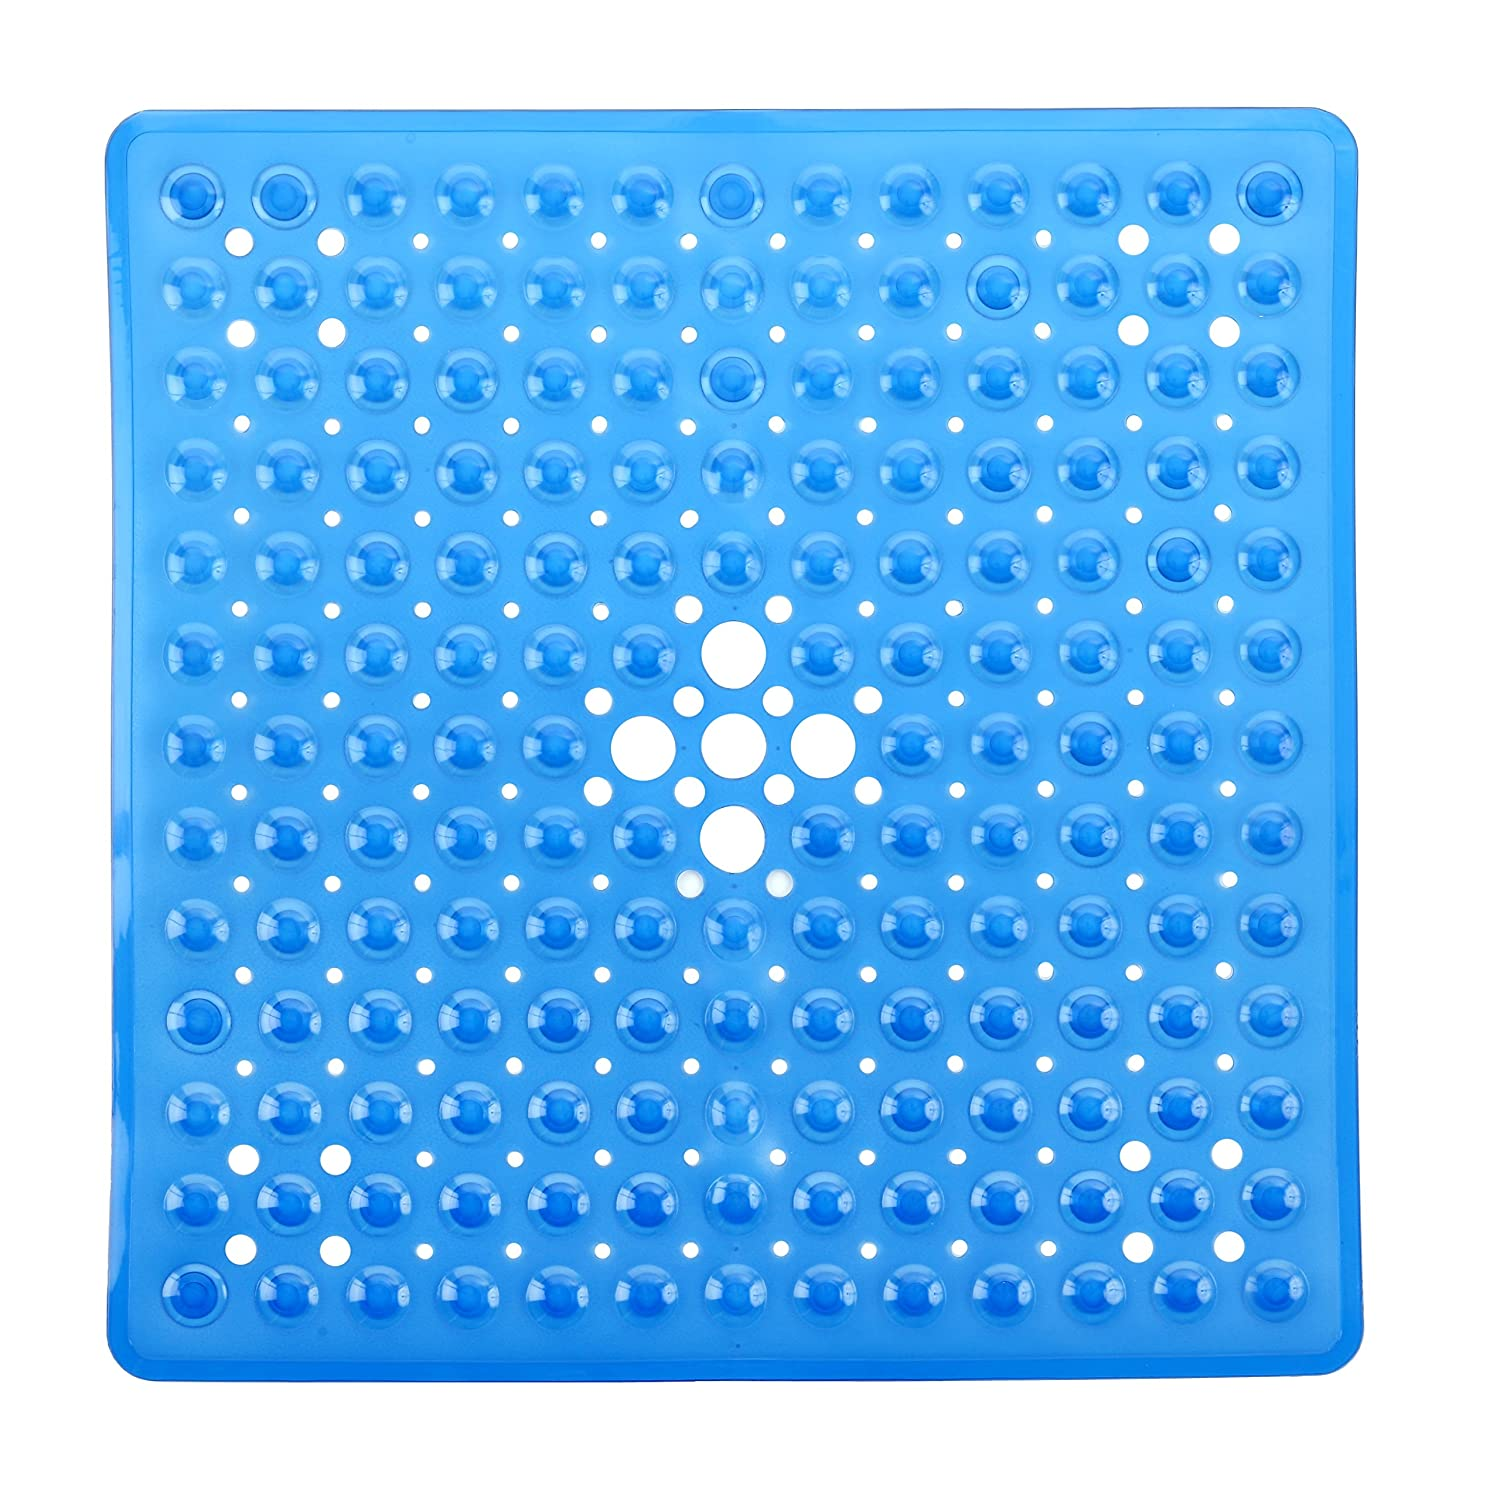 Amazon.com: SlipX Solutions Deluxe Square Shower Mat (Blue): Home ...